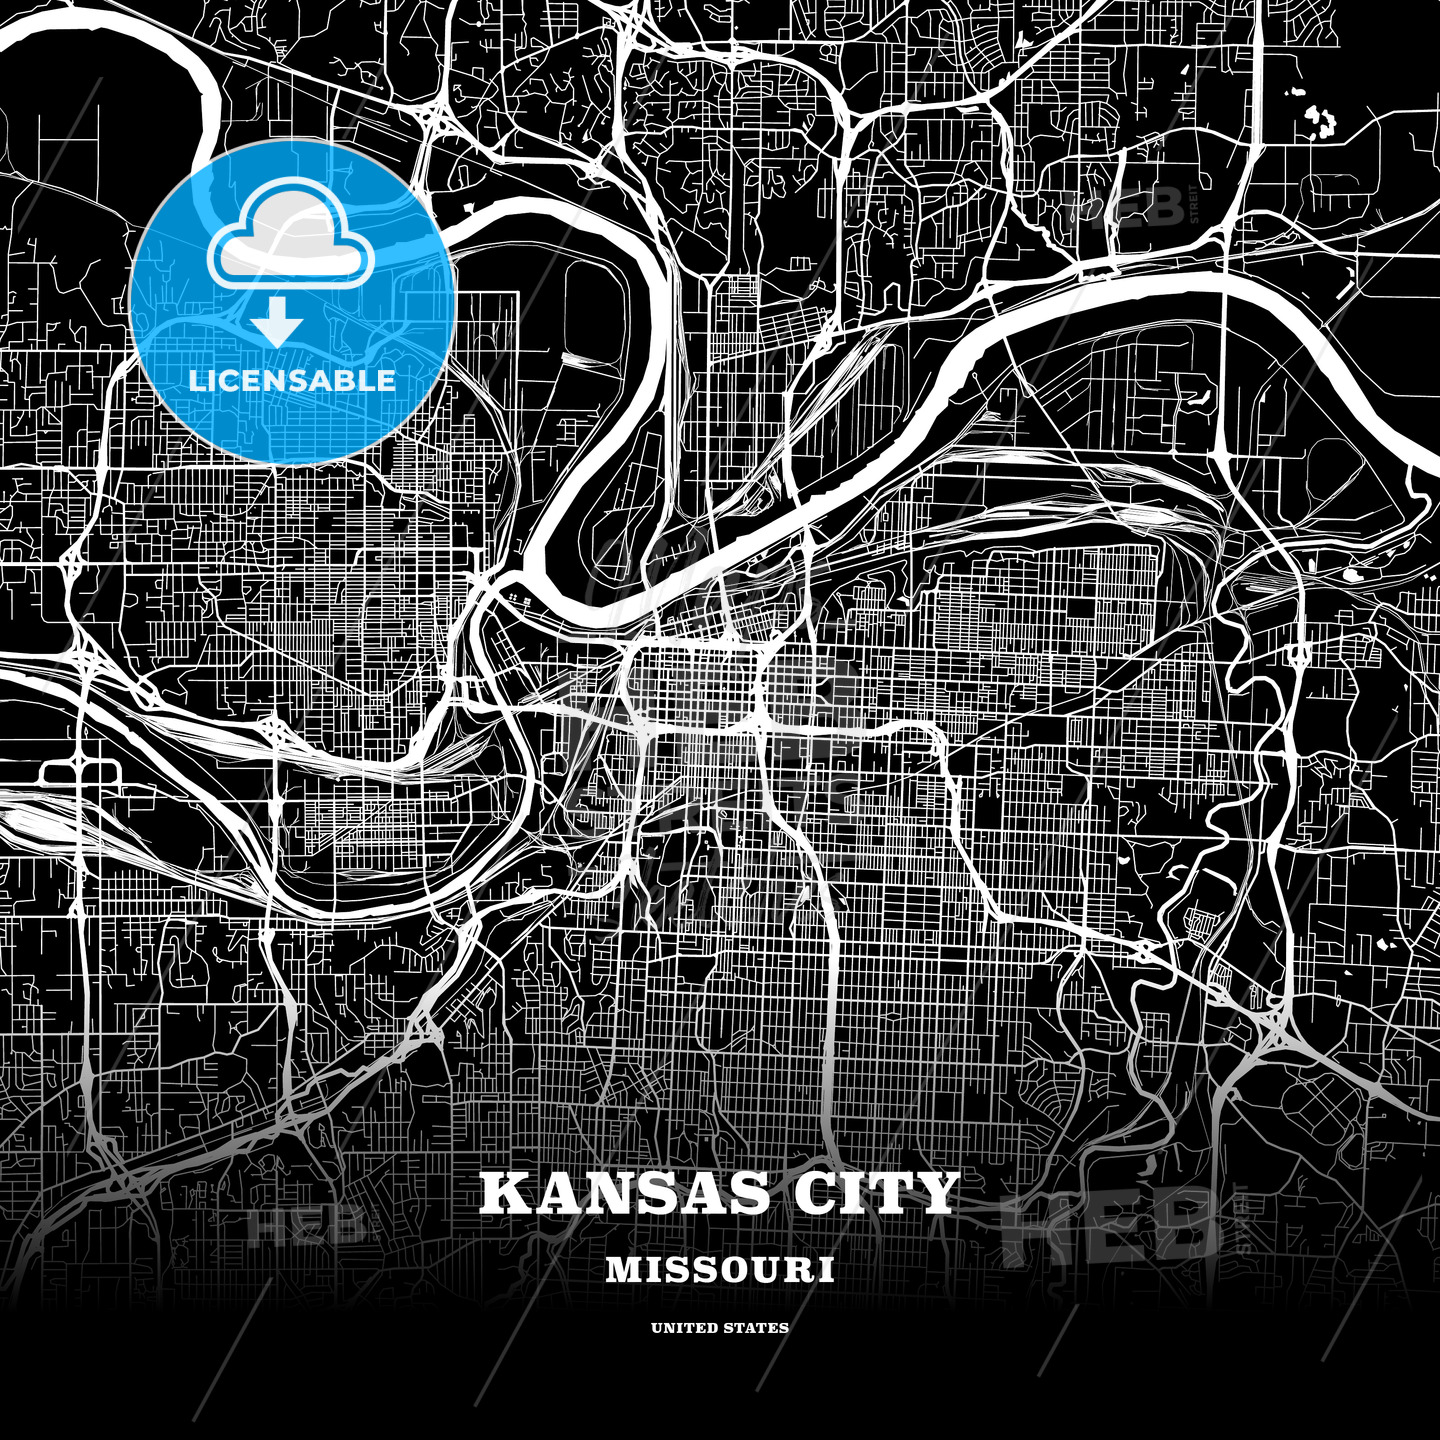 Black map poster template of Kansas City, Missouri, USA on recycling posters, planning posters, city design posters, city mural posters, radio posters, golf posters, vintage city posters, muenchen city posters, train posters, koln city posters, statistics posters, library posters, water posters, clothing posters, vision posters, city neighborhood posters, city travel posters, culture posters, home posters,